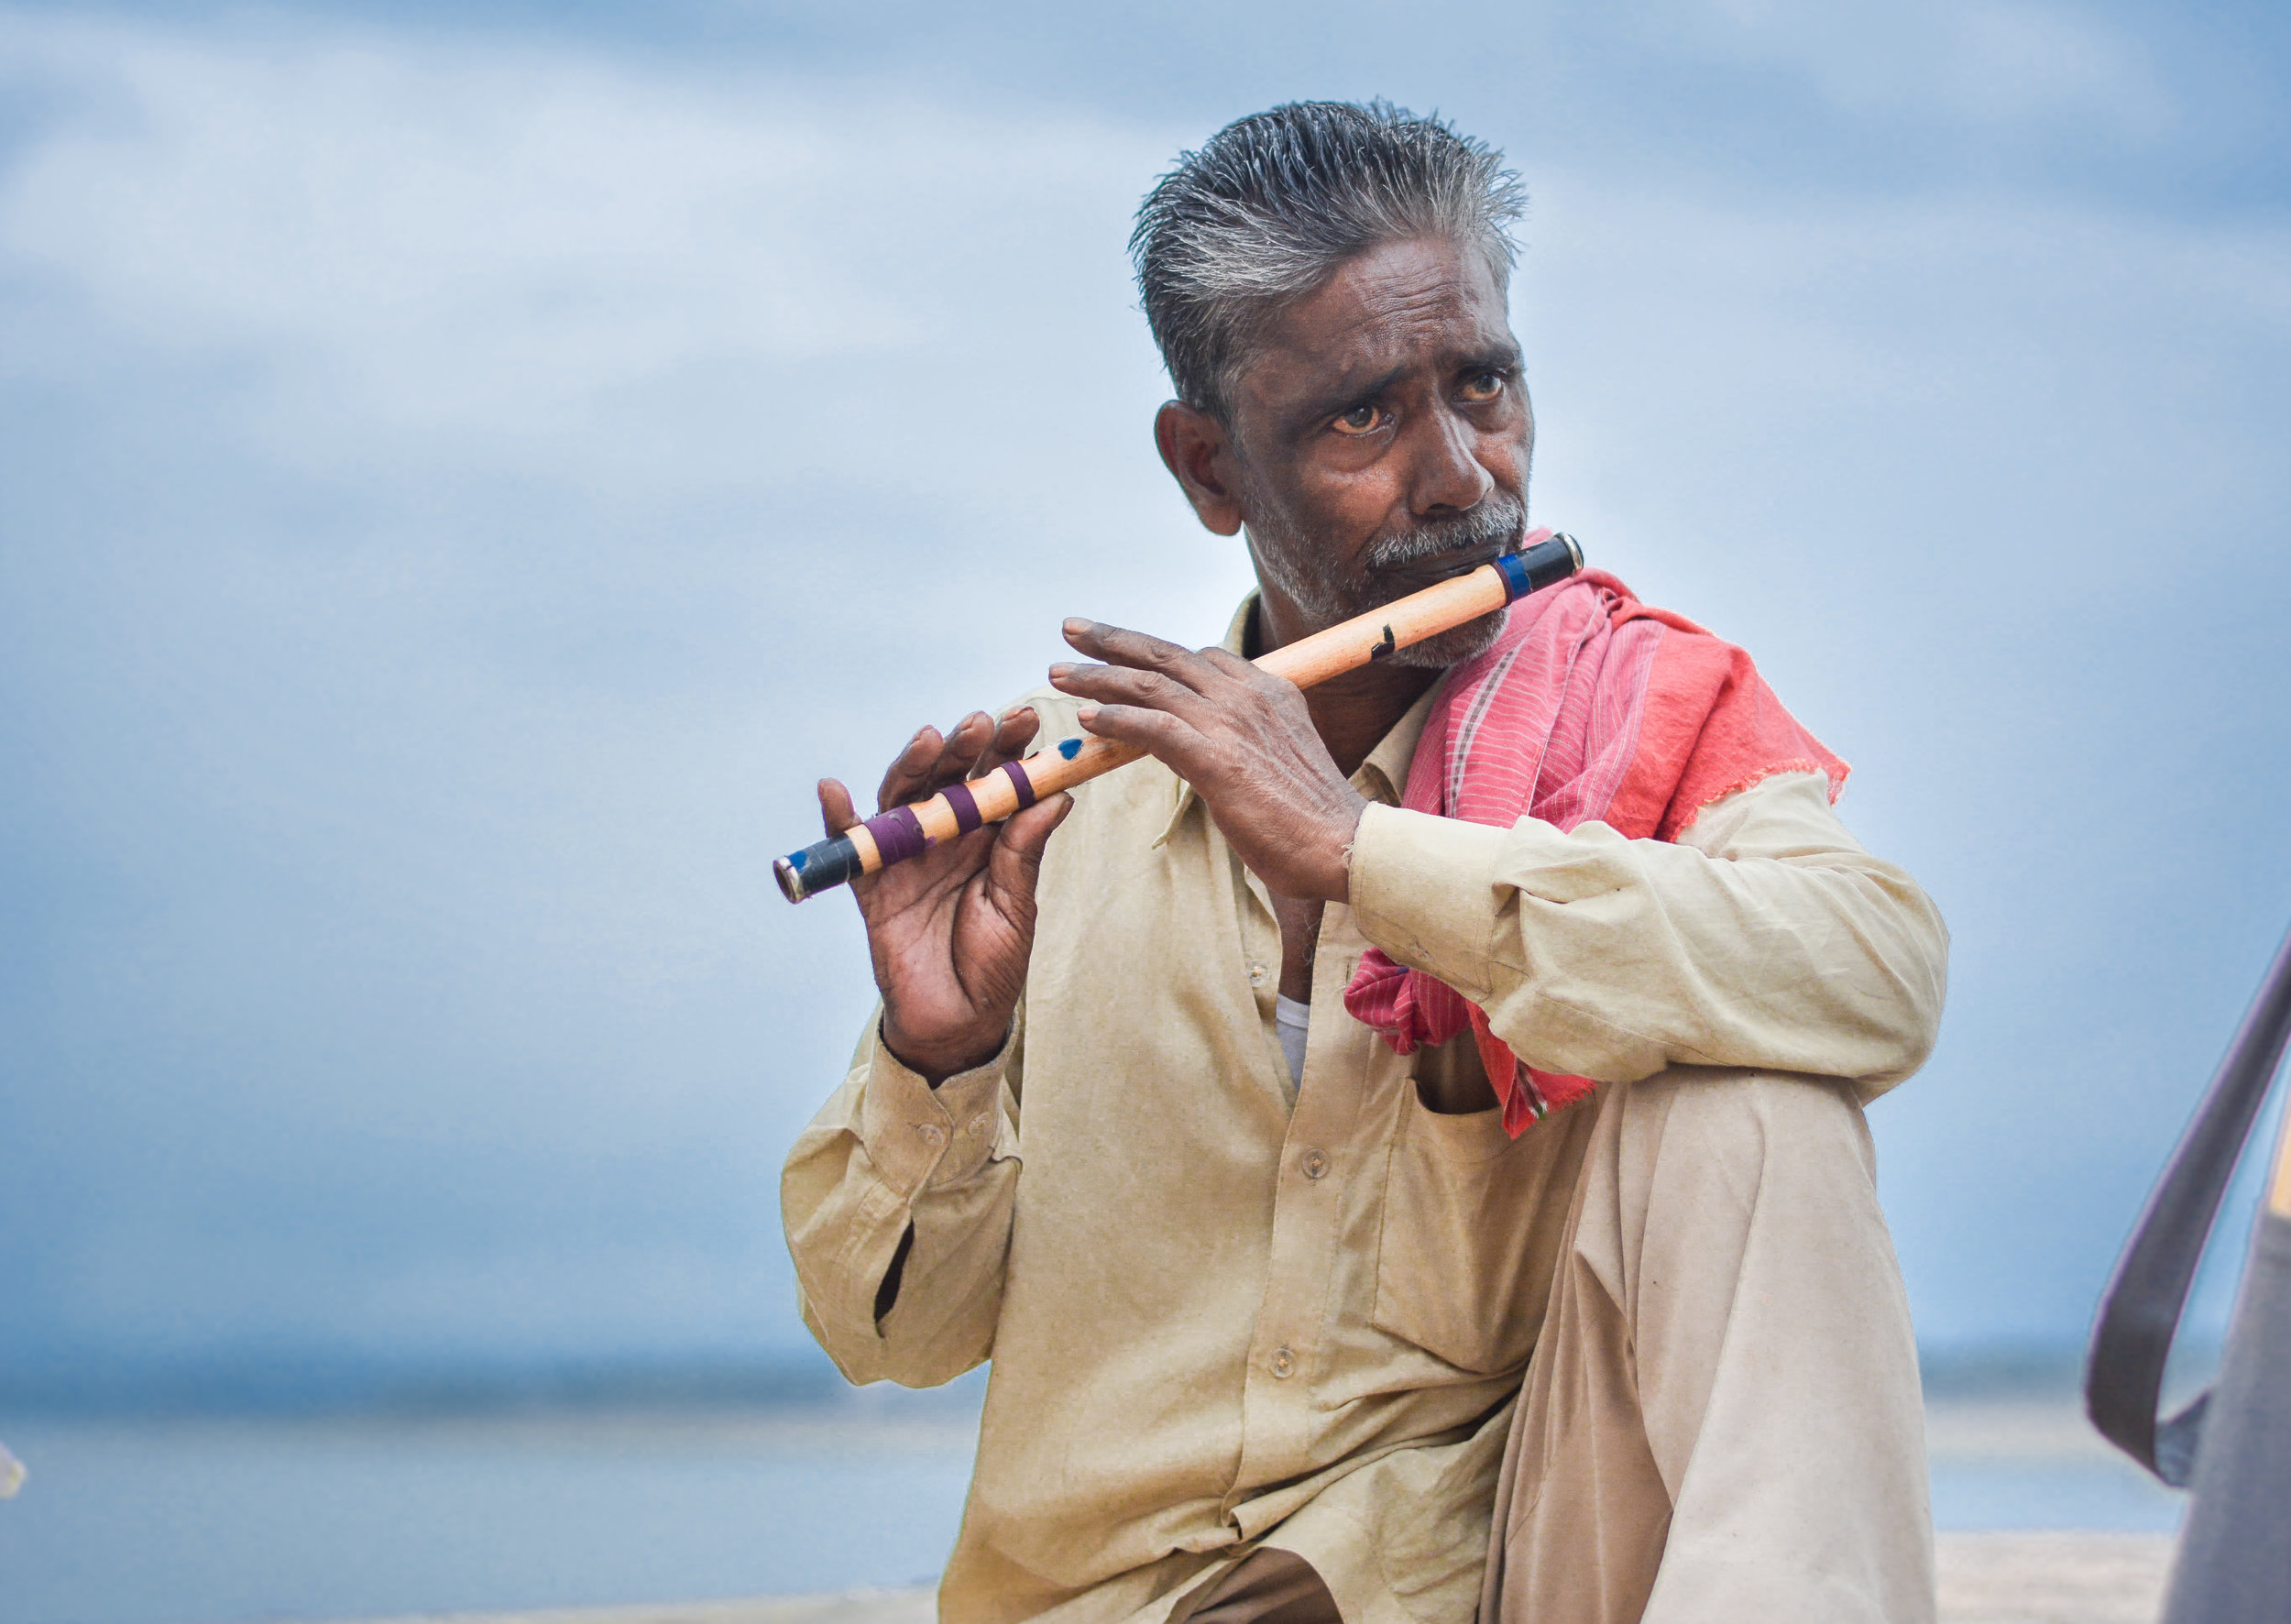 Native Asian Indian playing wooden bansuri flute.